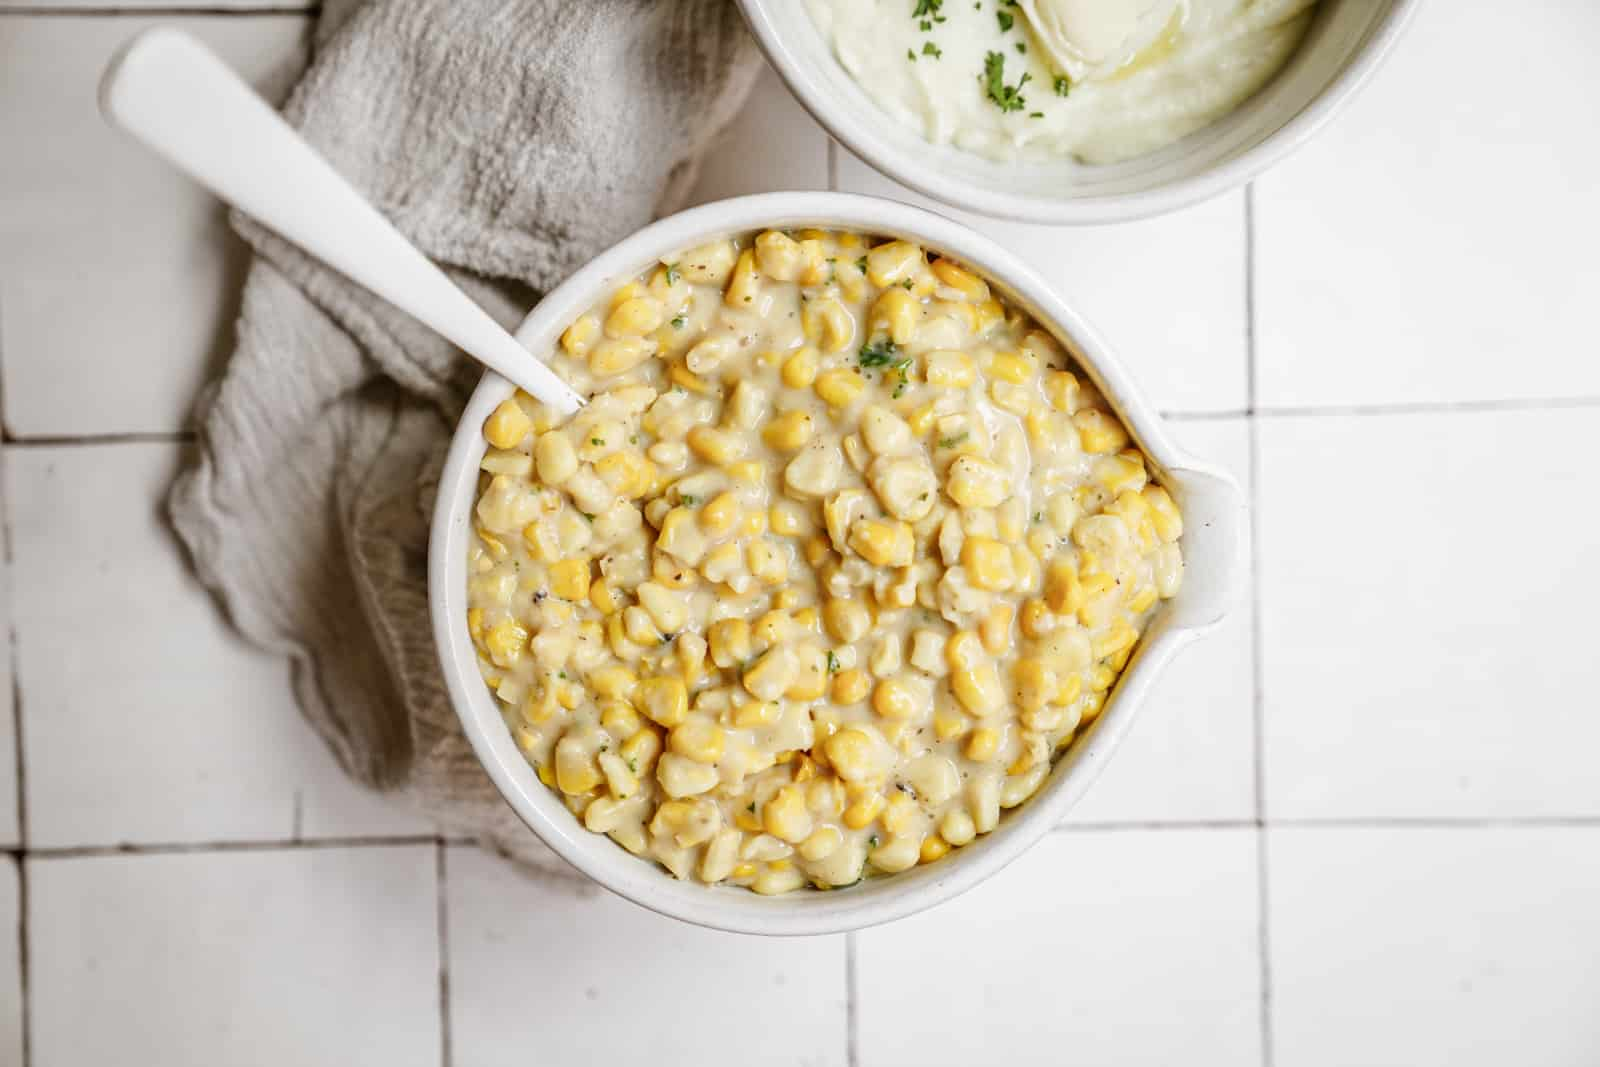 Creamed corn recipe in a serving dish on a white countertop.